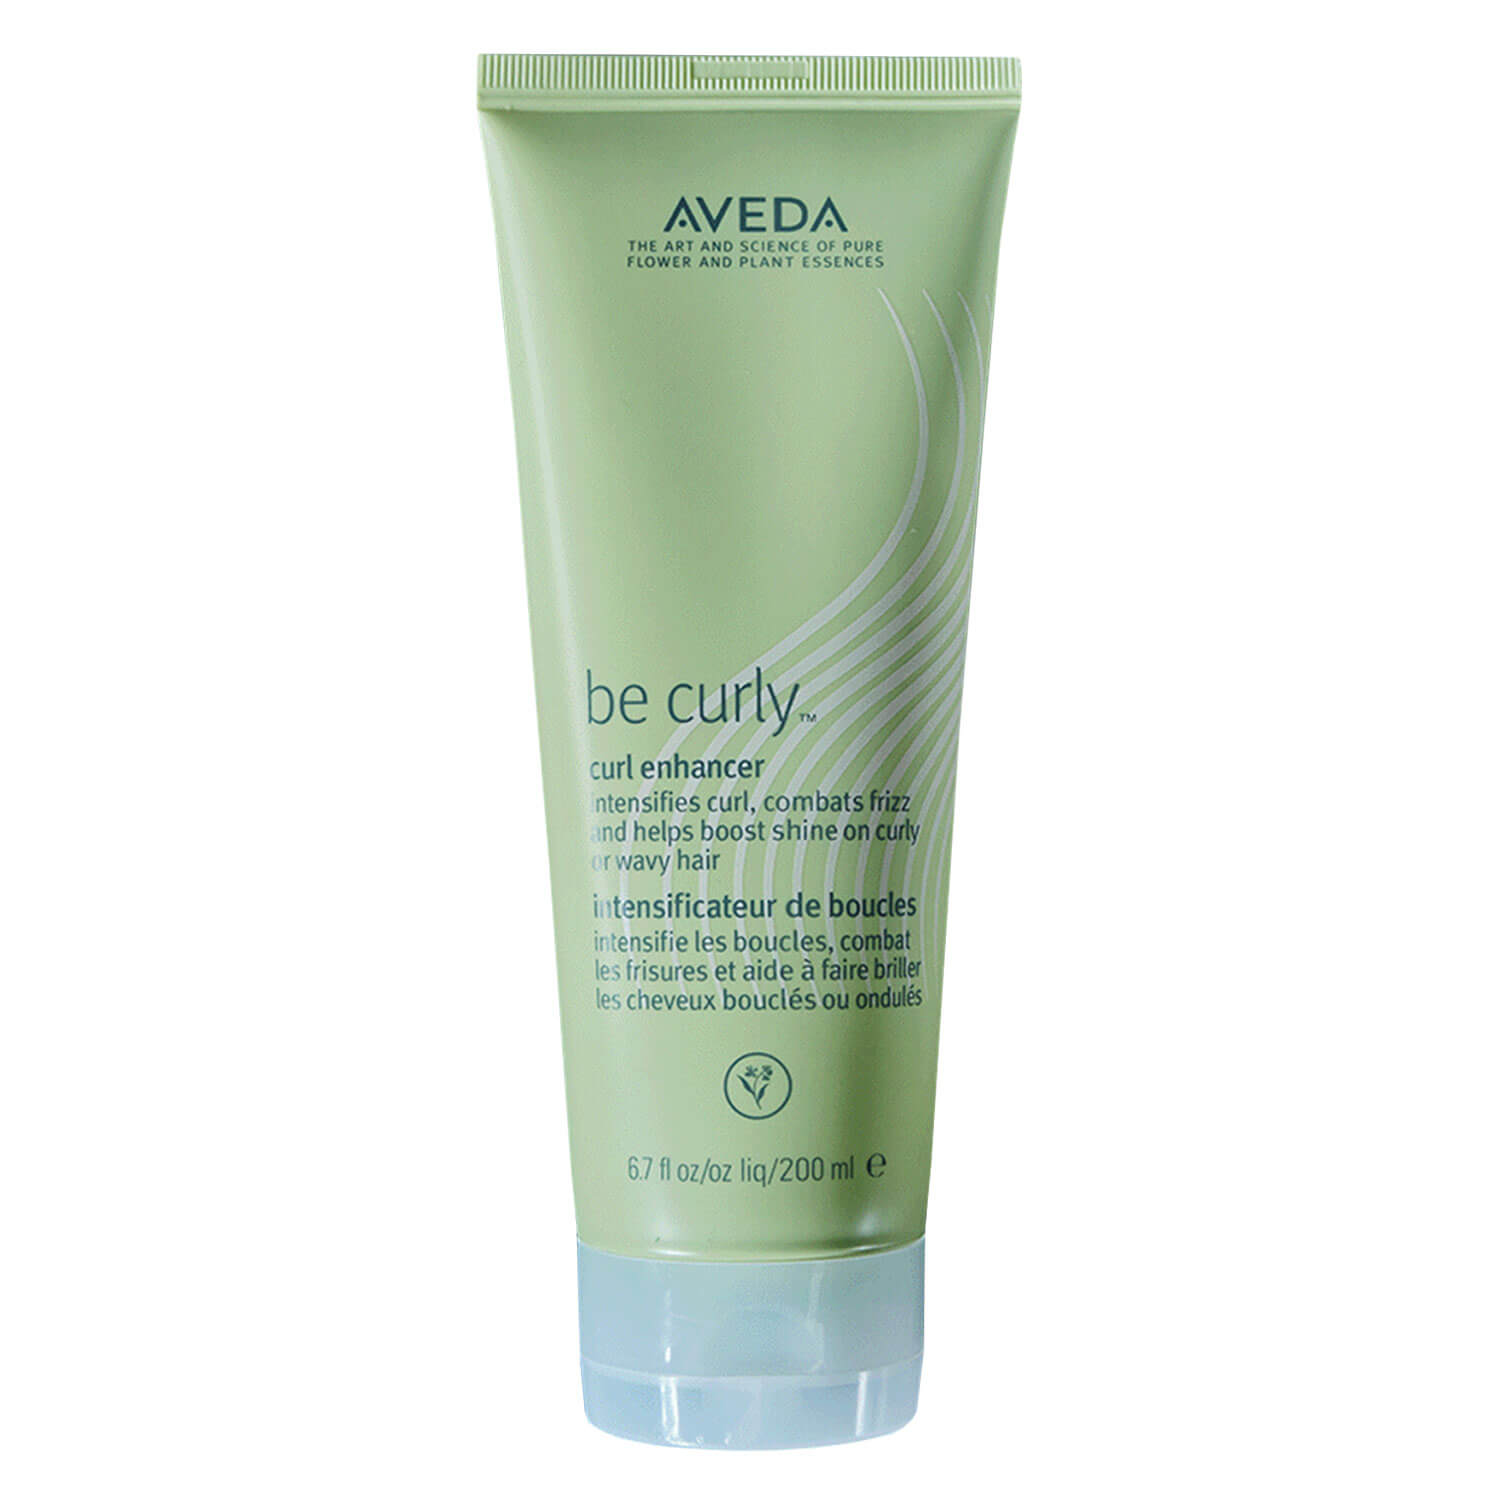 be curly - curl enhancer